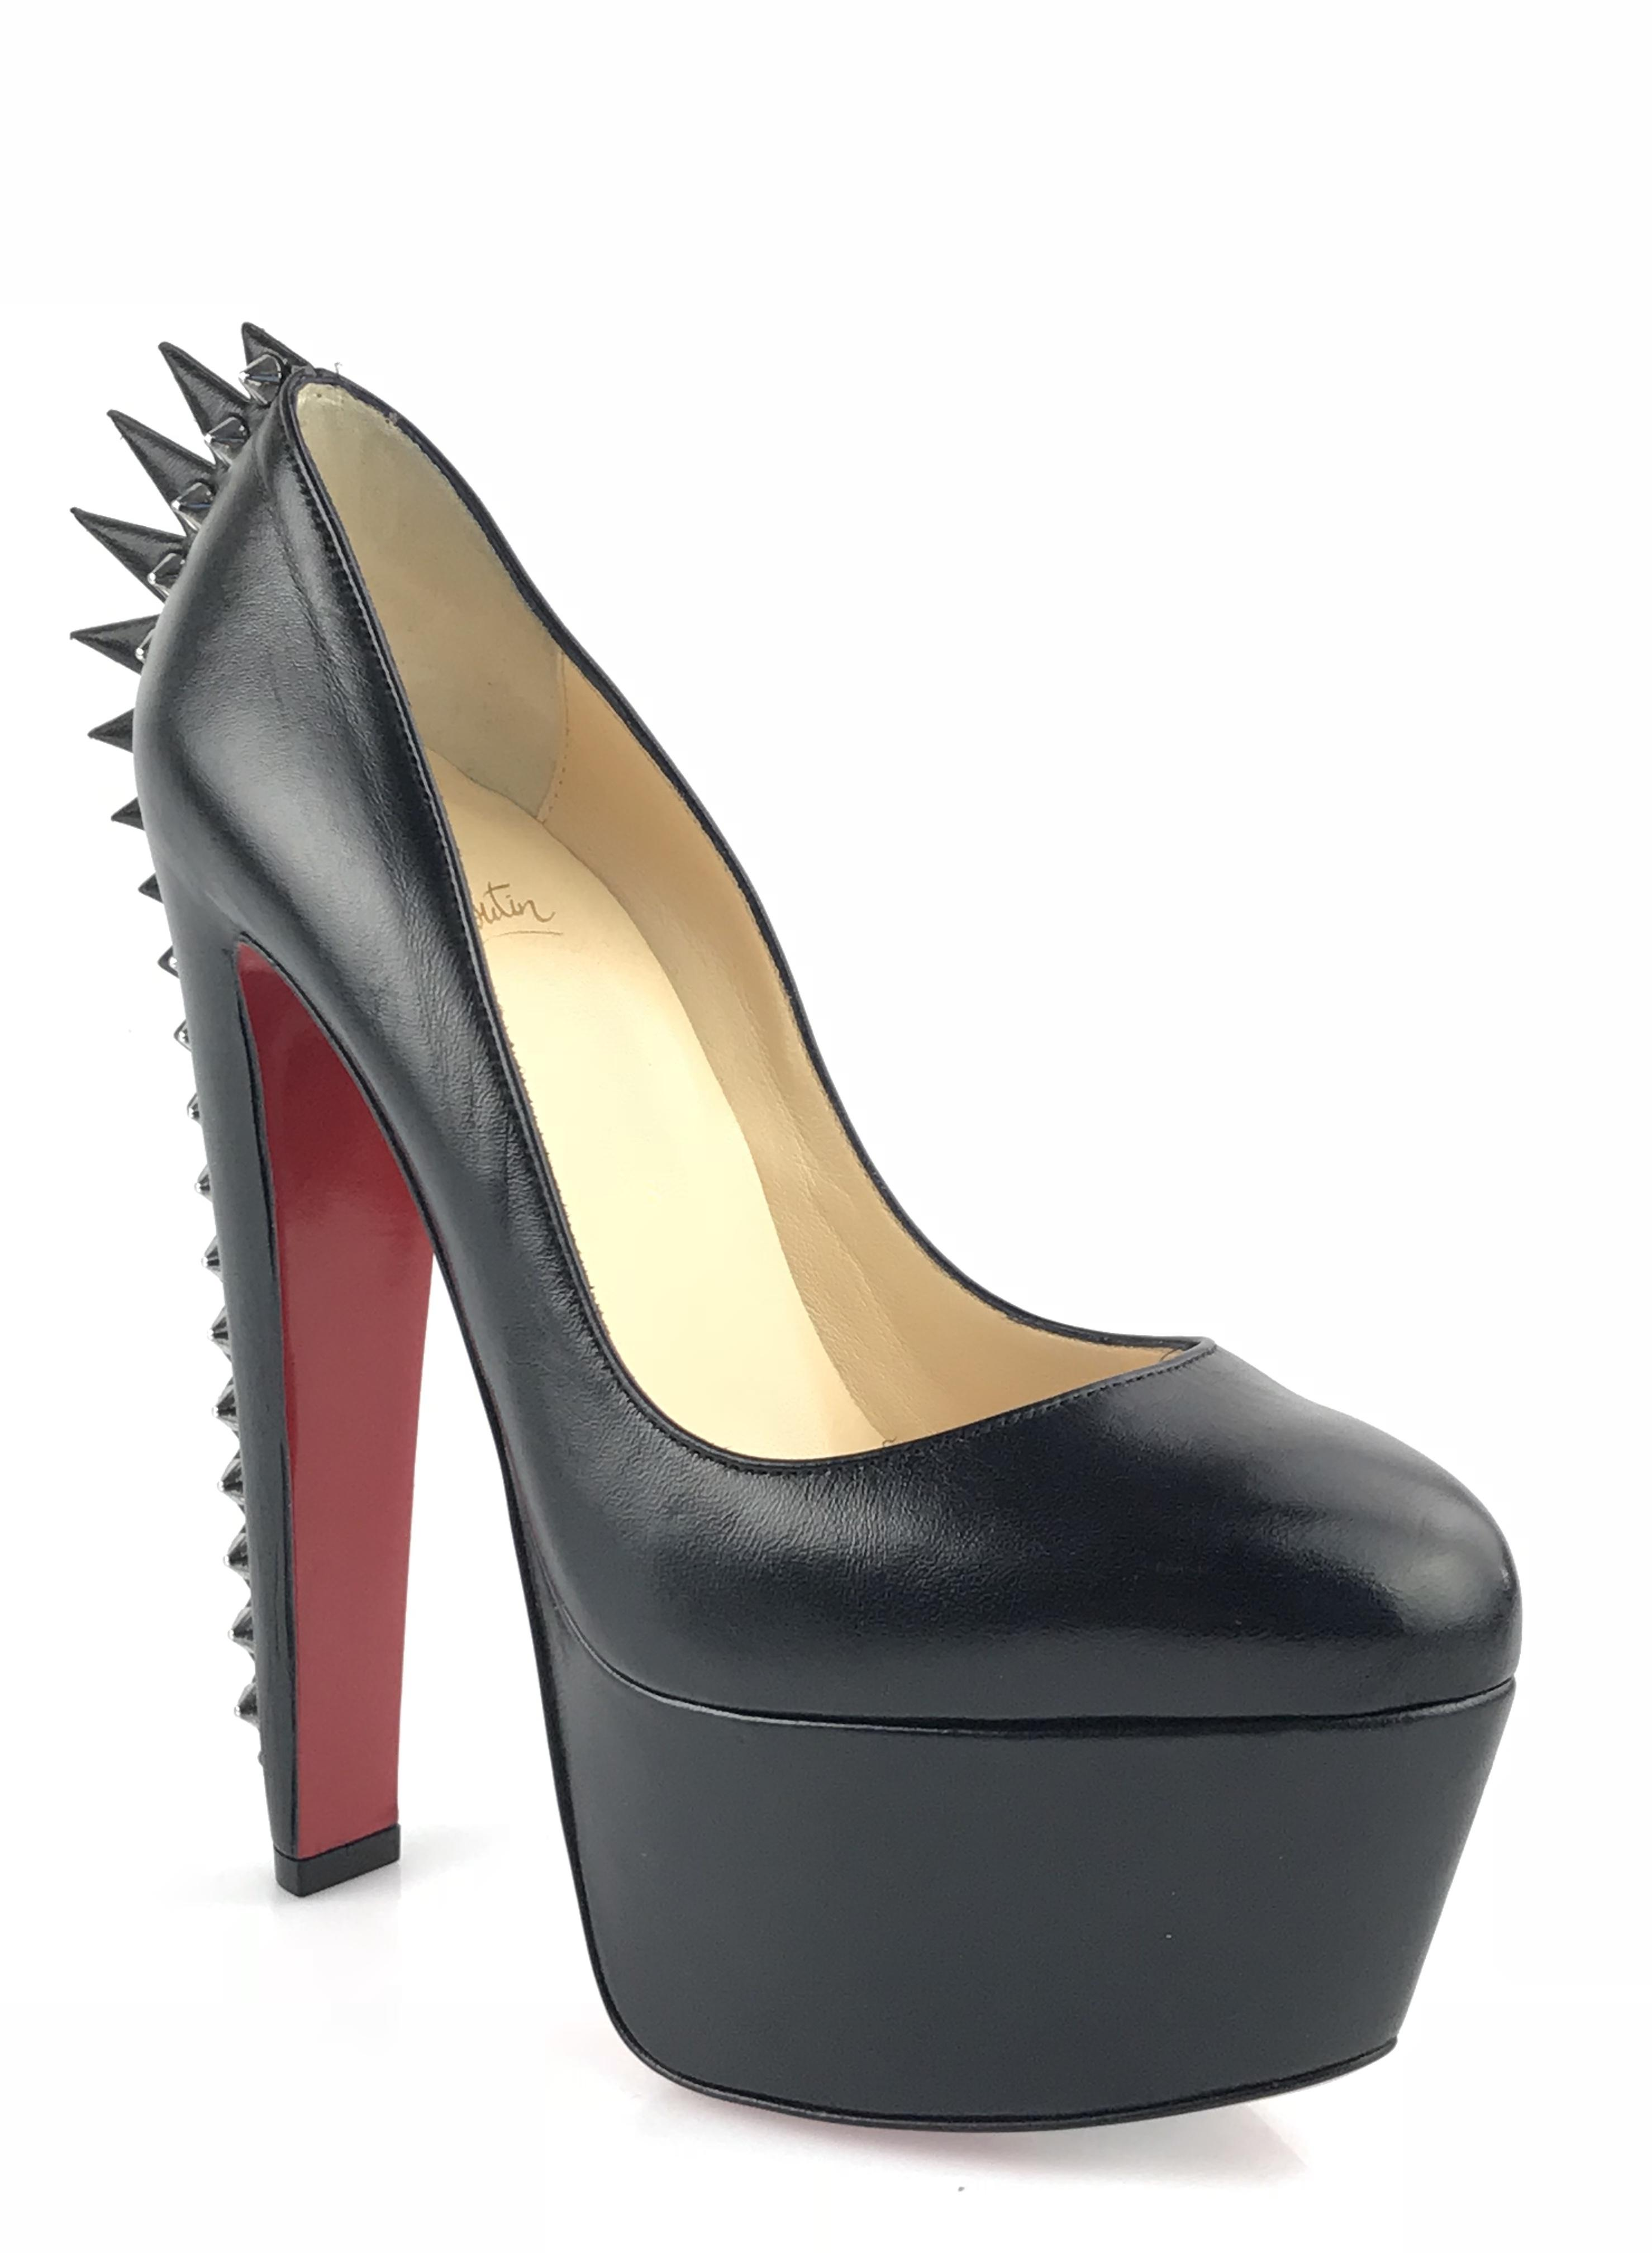 outlet with credit card Christian Louboutin Electropump 160 Spiked Pumps cheap latest perfect online clearance exclusive FQwrWmt